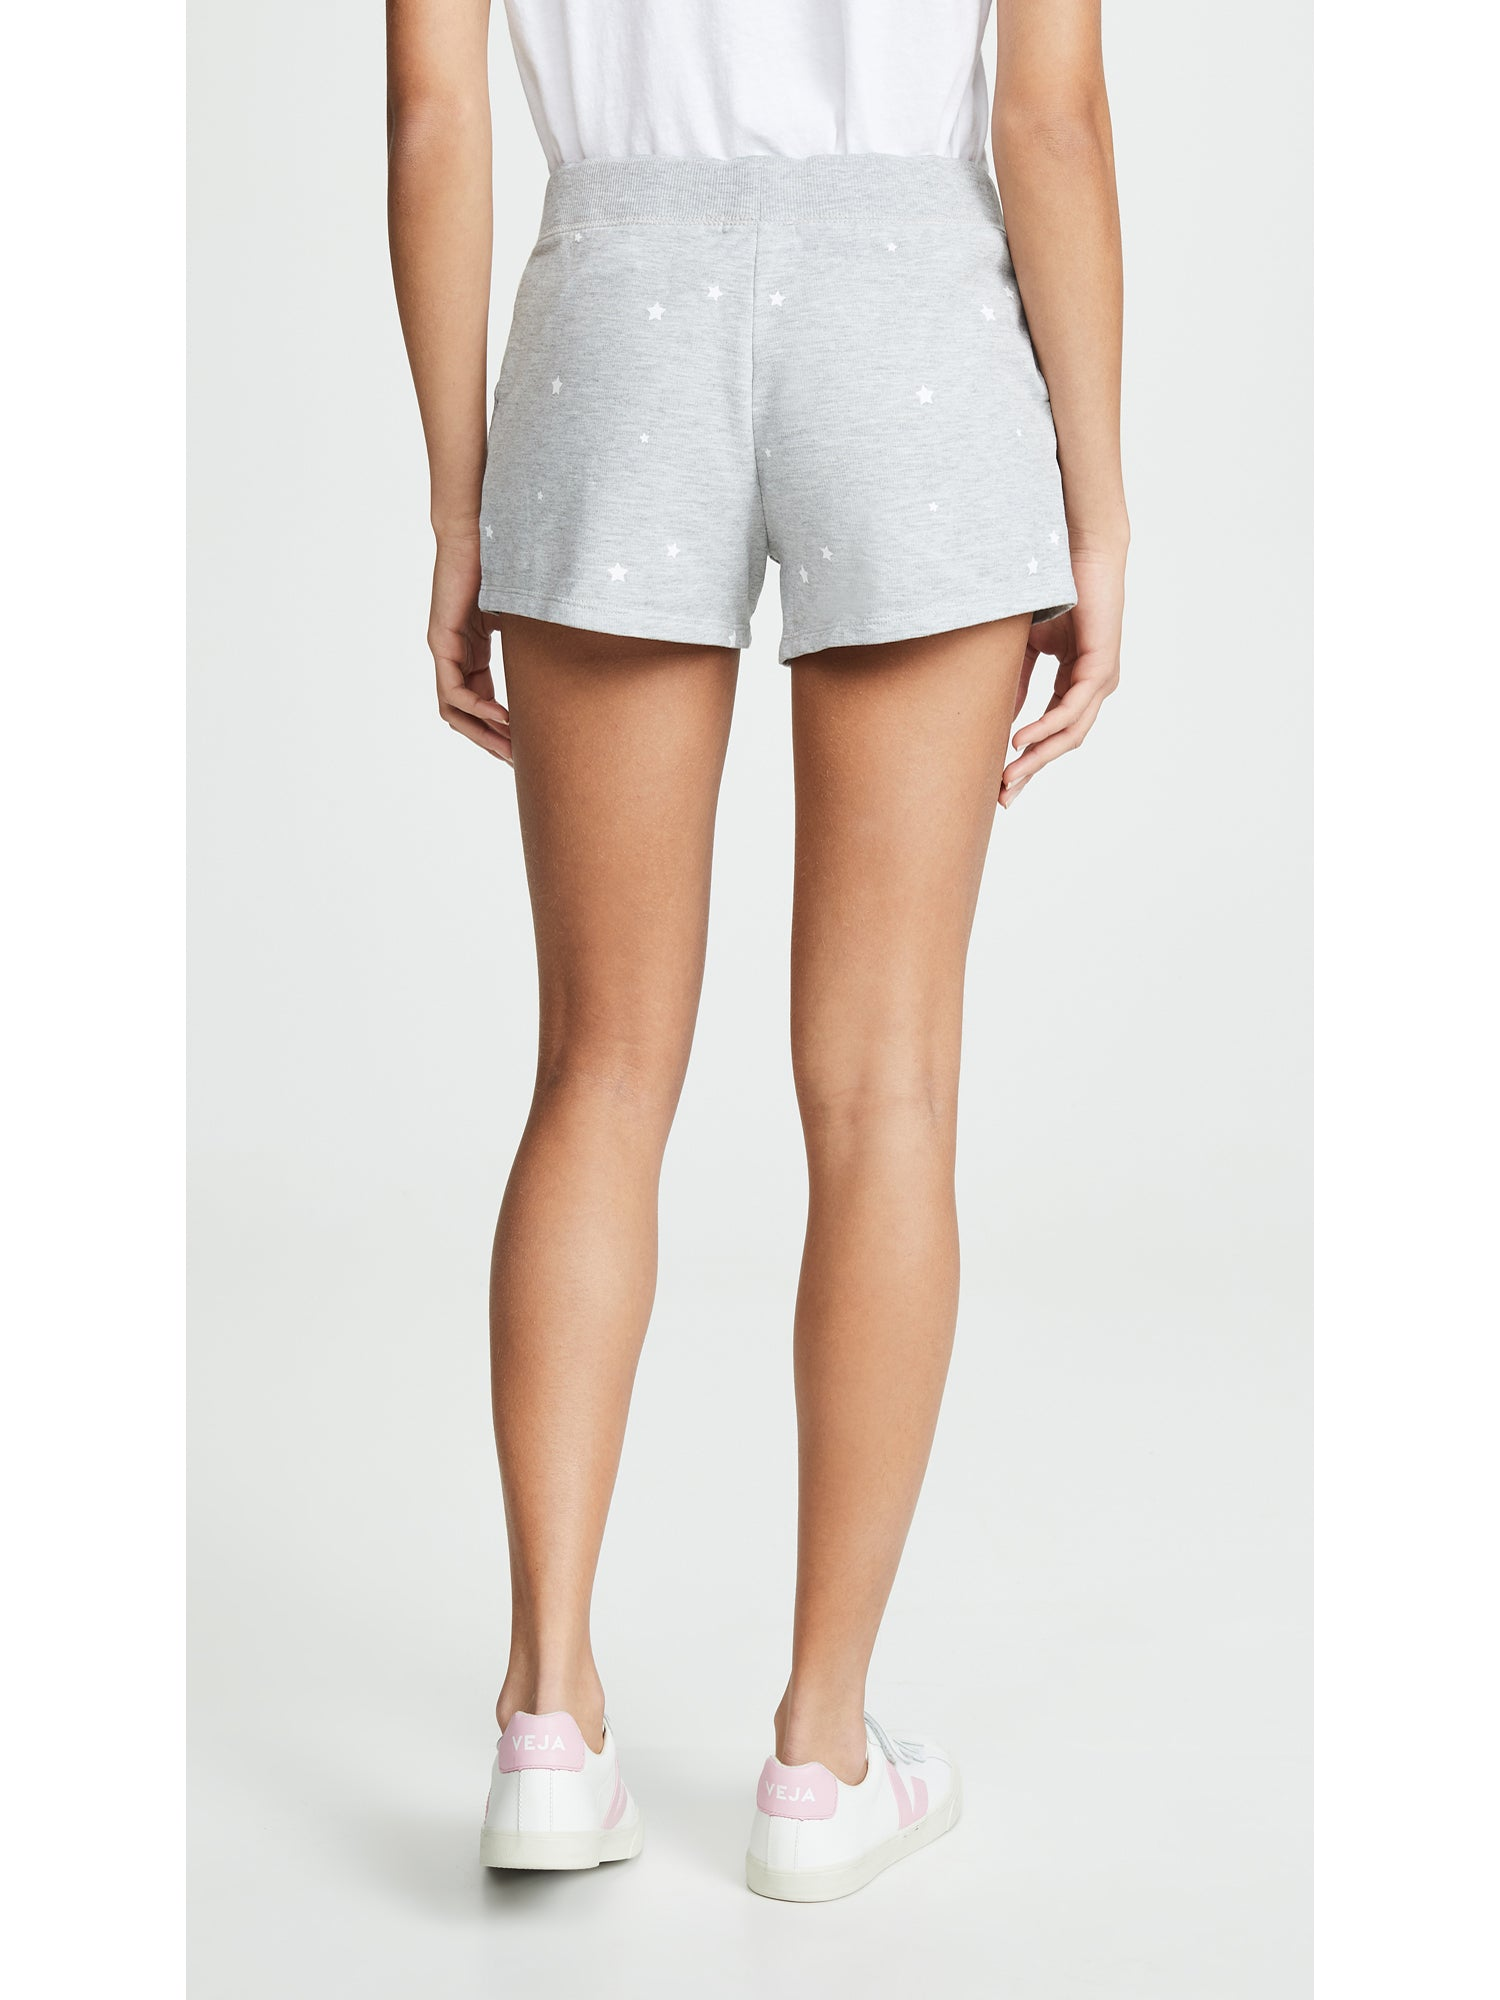 Z Supply Stardust Boyfriend Shorts - Heather Grey Star Print | TILDEN